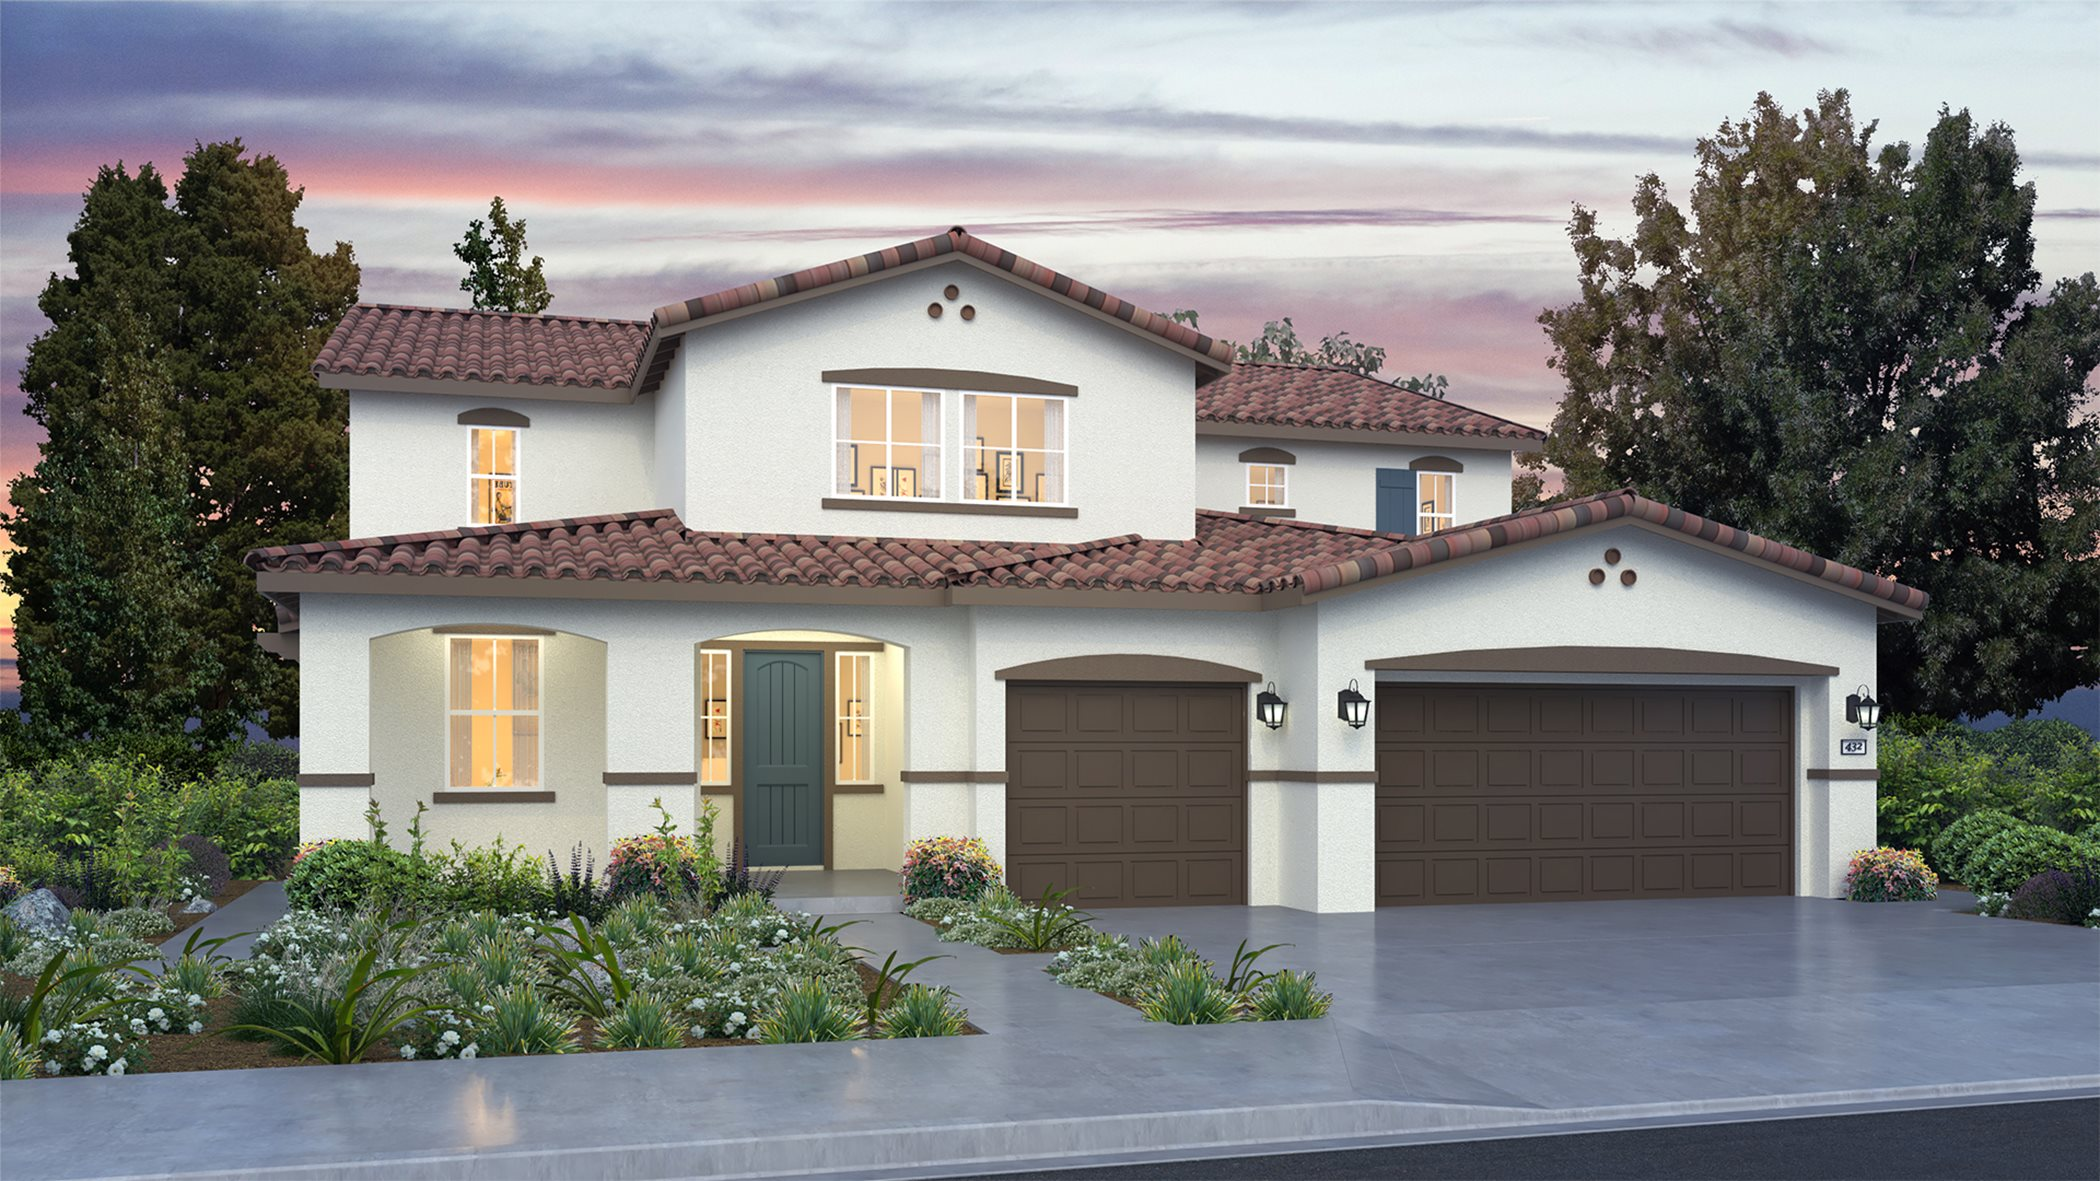 Weatherstone at The Reserve - 4134 Next Gen by Lennar A Exterior